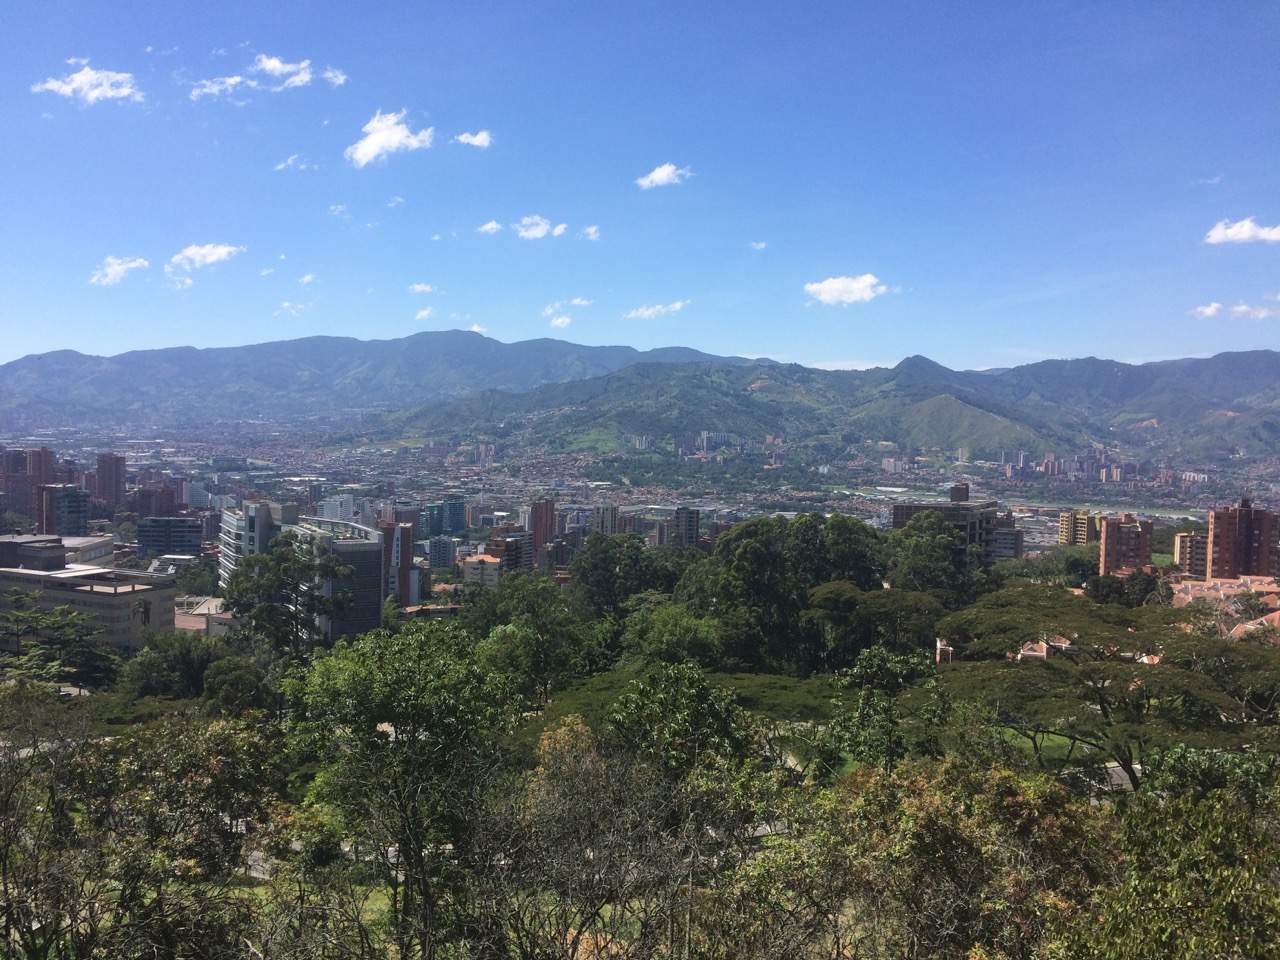 Medellin weather is famous for being springlike year around